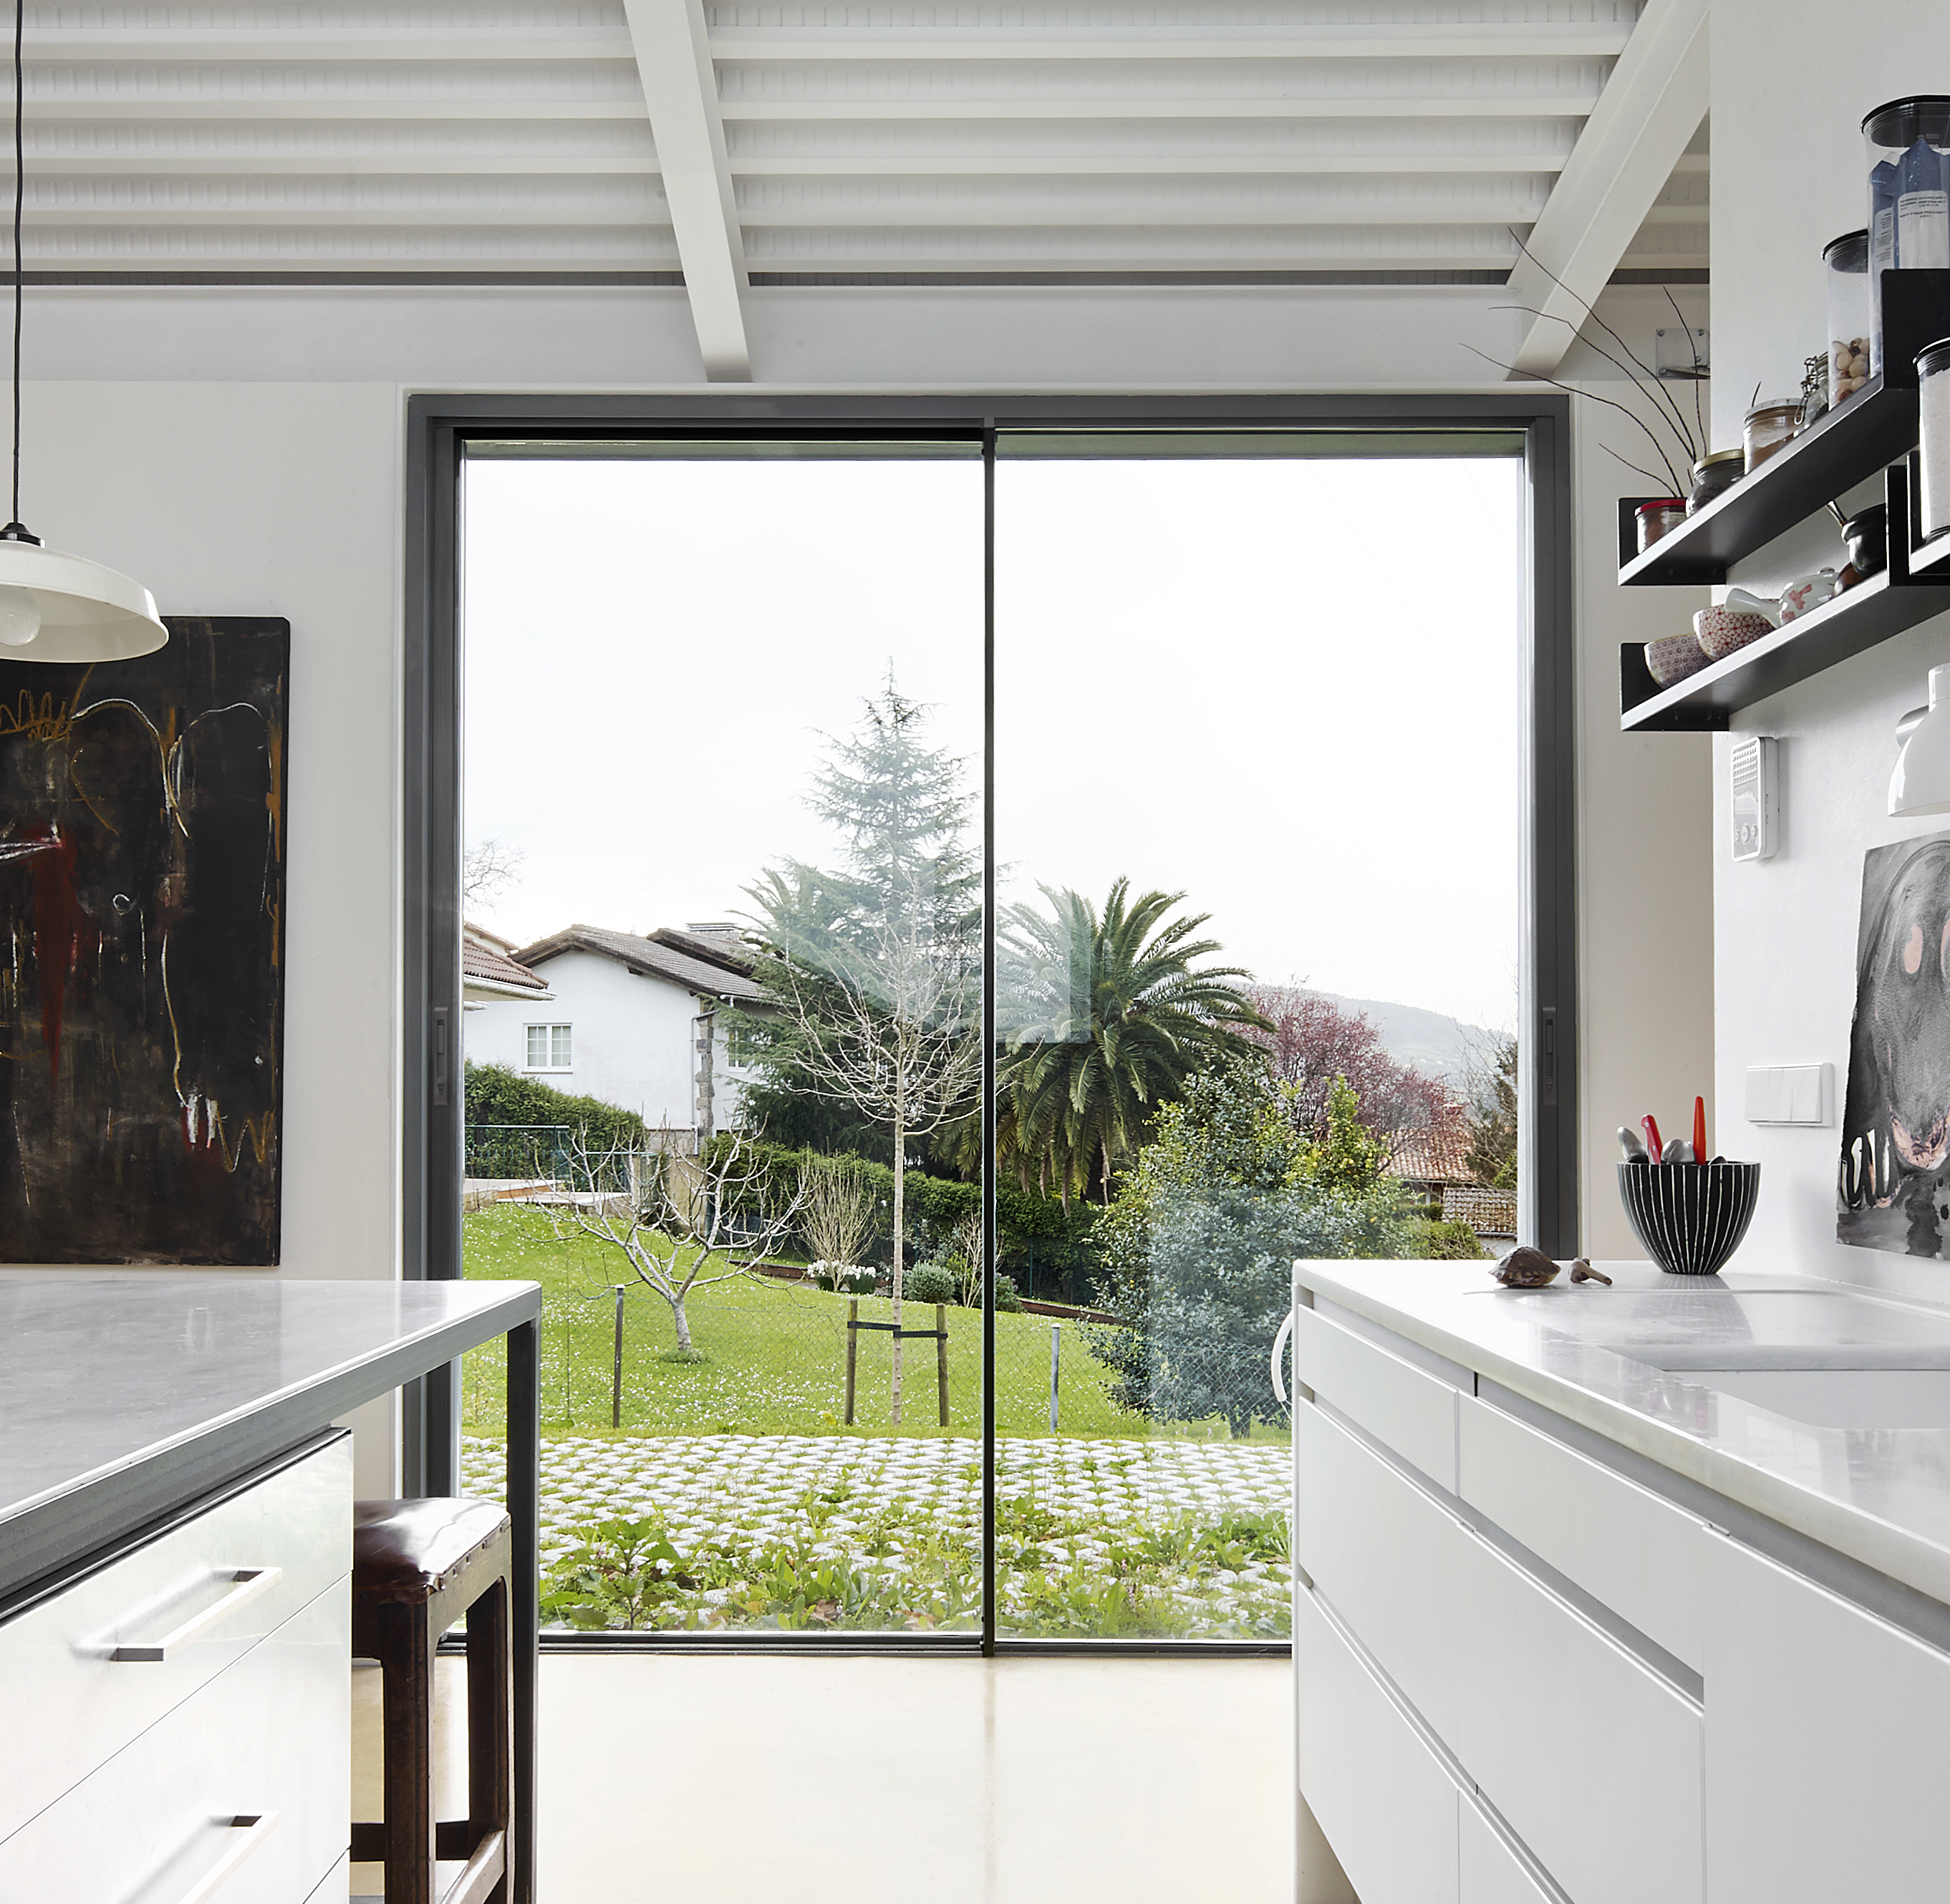 Virtually frameless patio doors